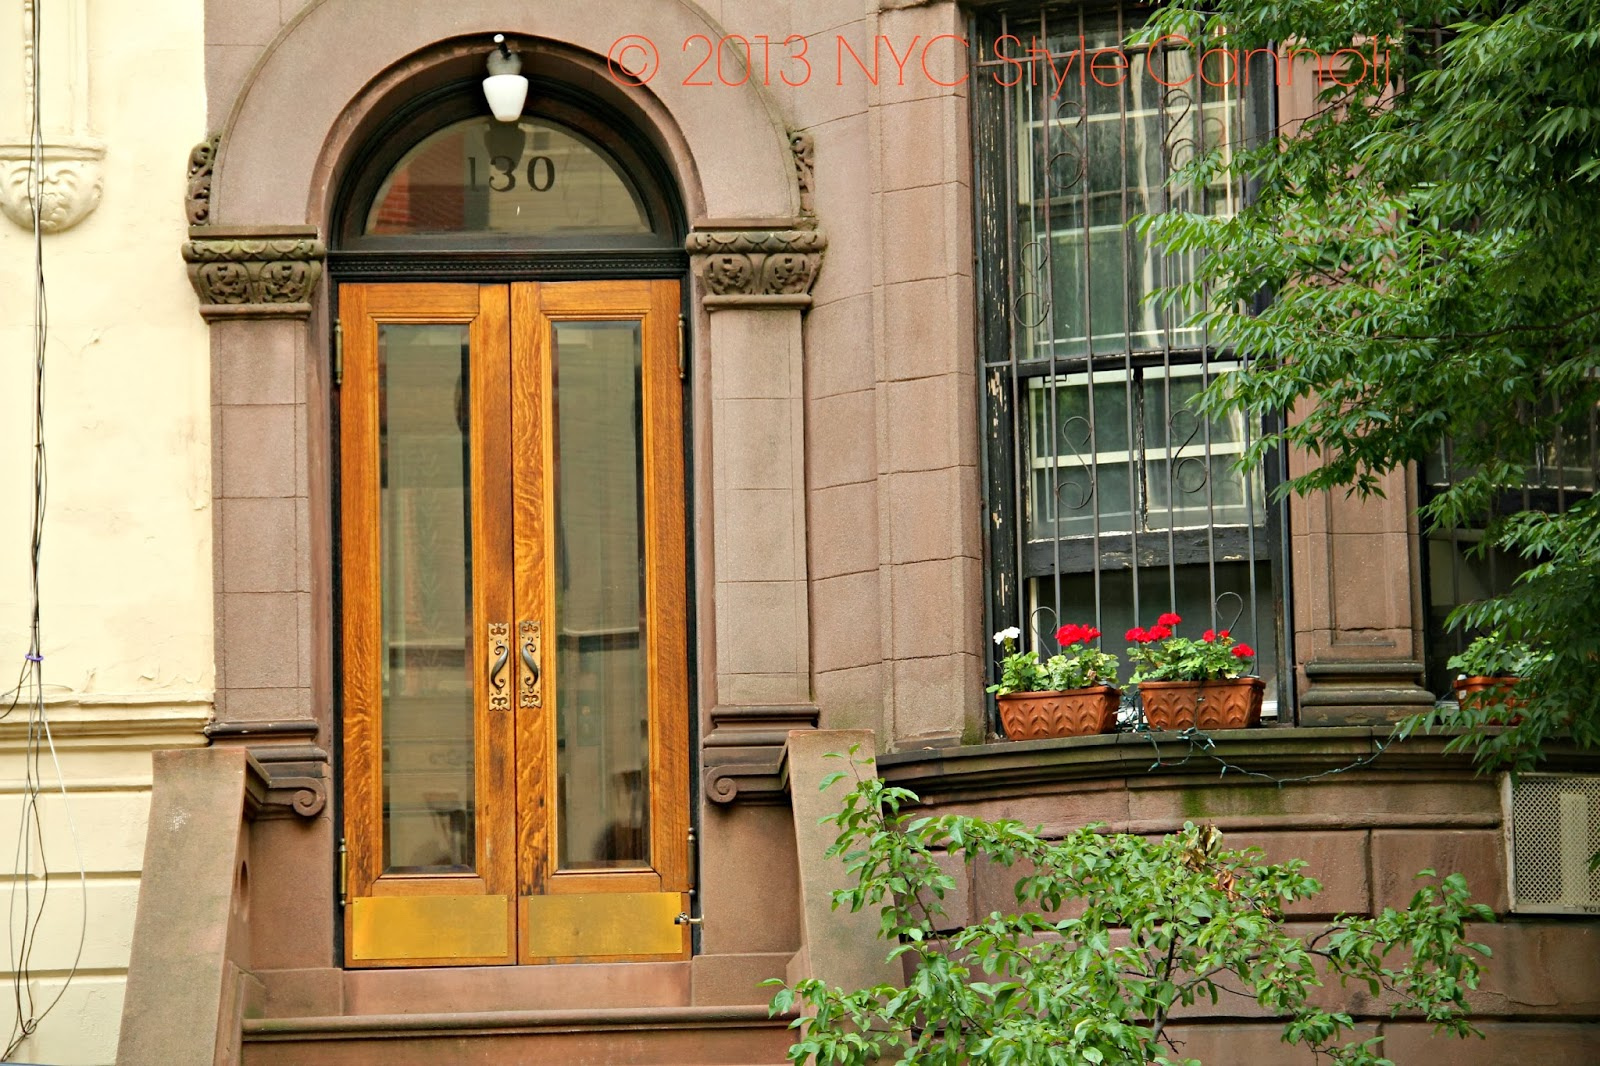 The Fabulous Door, In Such Detail, And The Flowers On The Ledge. I Had The  Pleasure In 2013 Of Really Walking Around The Upper West Side ...